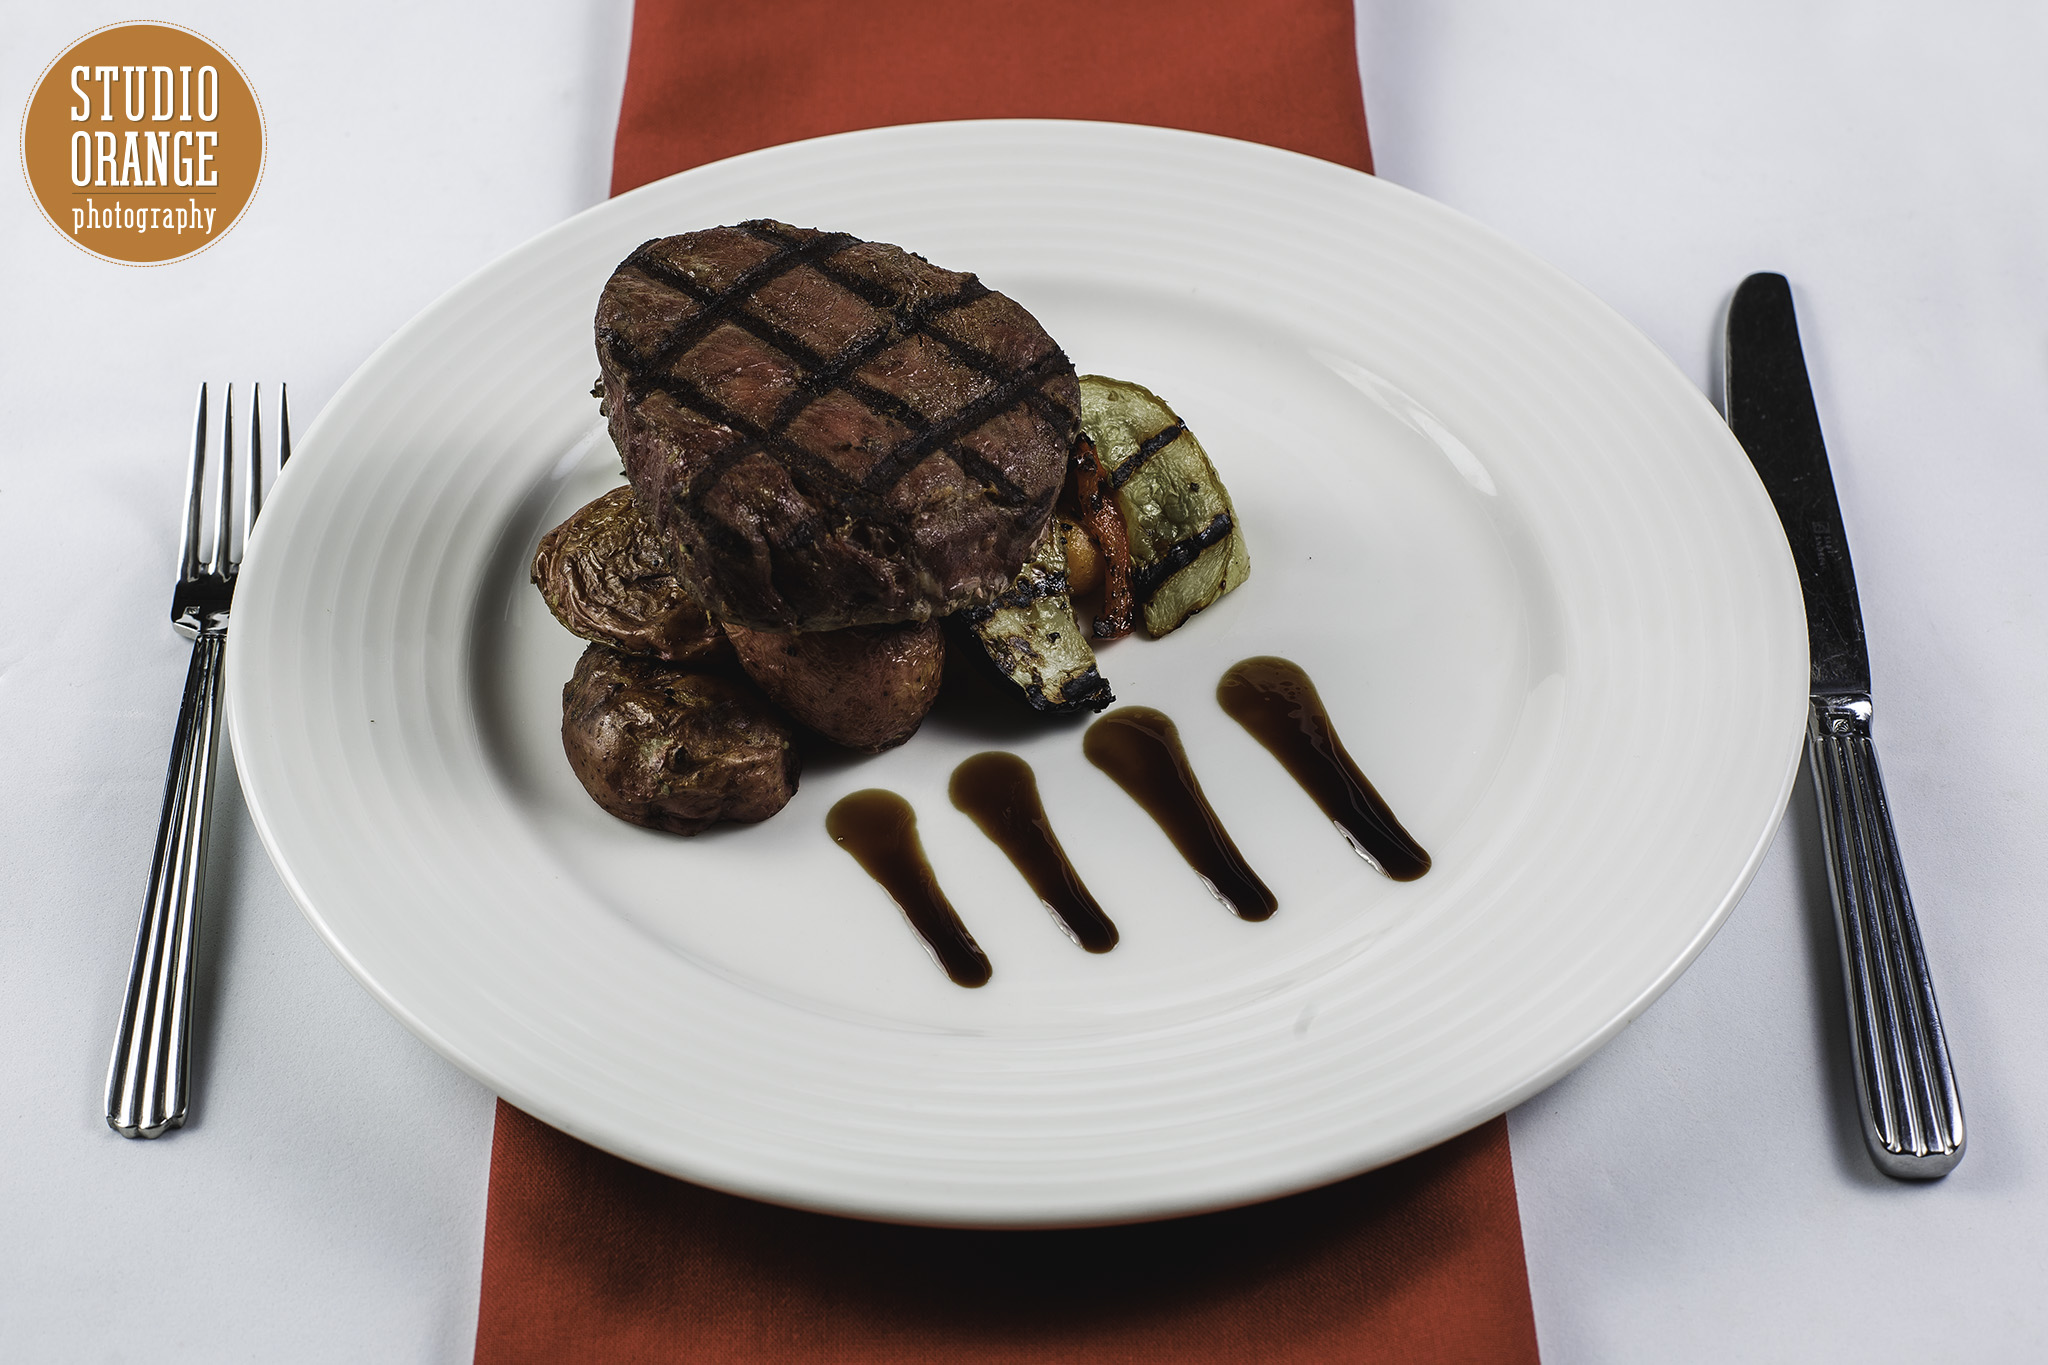 Steak Sirloin - Steak Tenderloin cooked to perfection (Medium) and glazed with a merlot wine reduction. Served on a bed of confit potatoes and grilled vegetable medley.(Gluten Free)